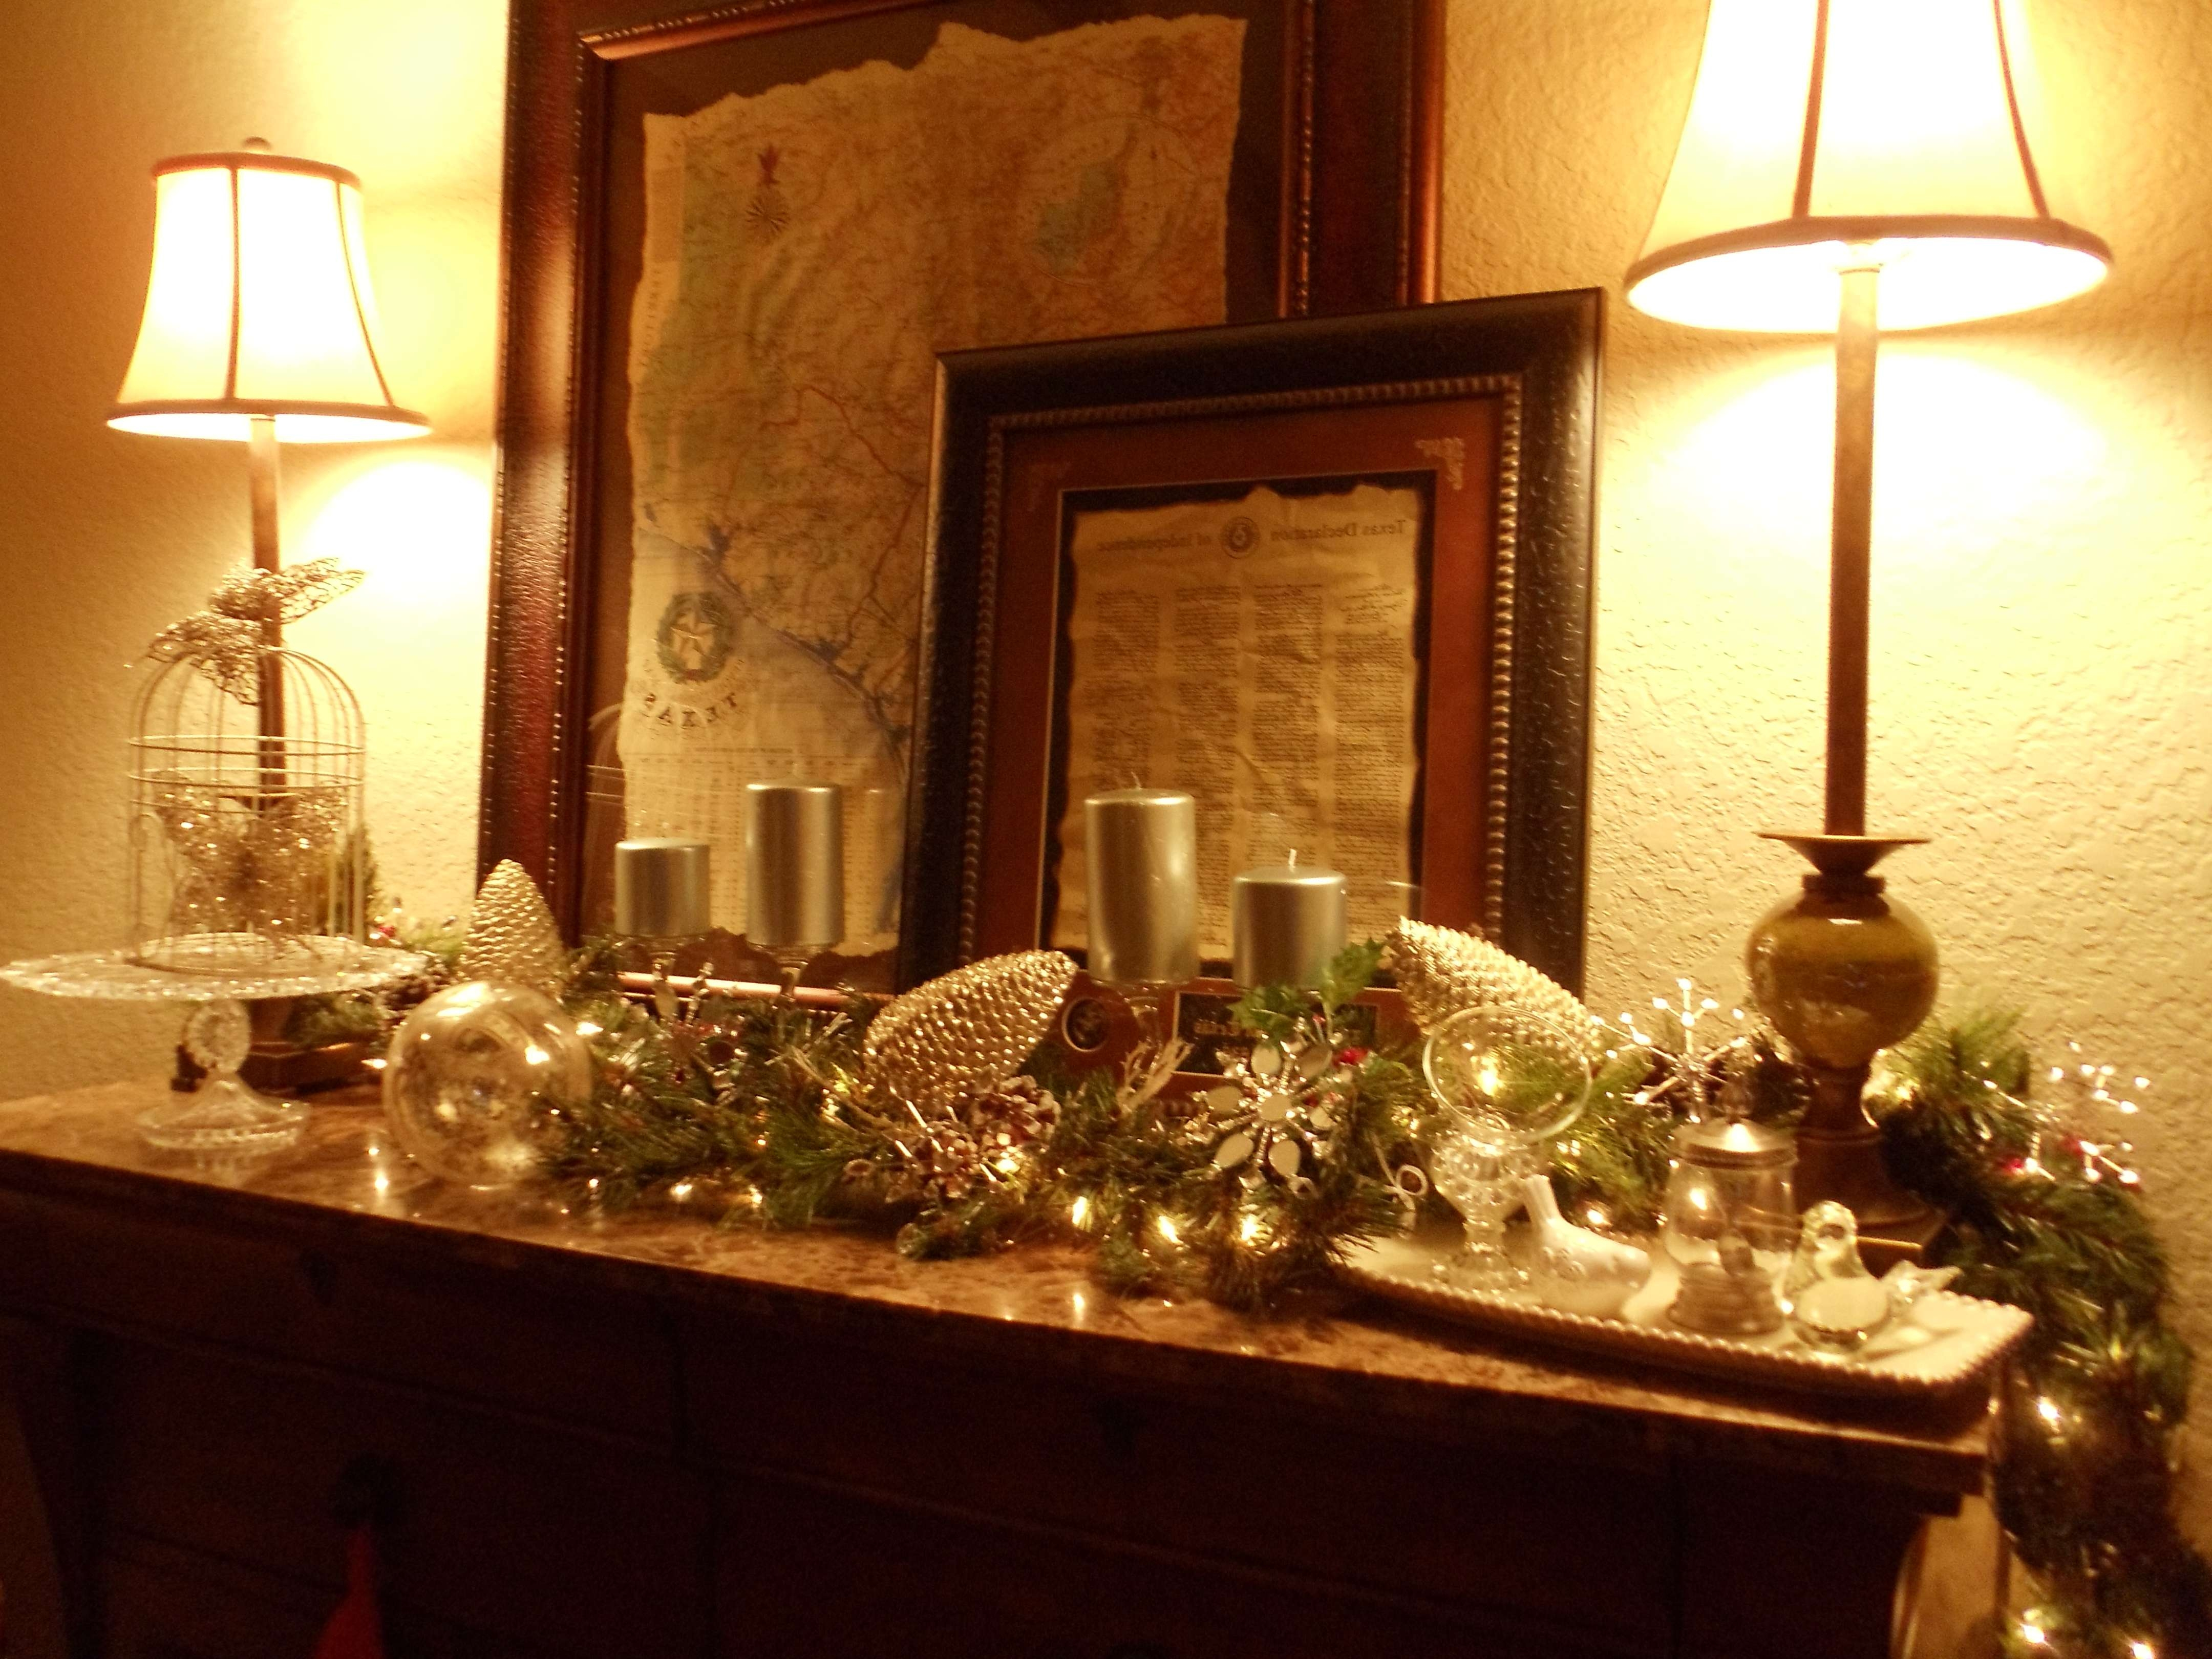 My Christmas Sideboard | Nola Girl At Heartlifestyle Blog For Sideboards Decors (View 10 of 20)